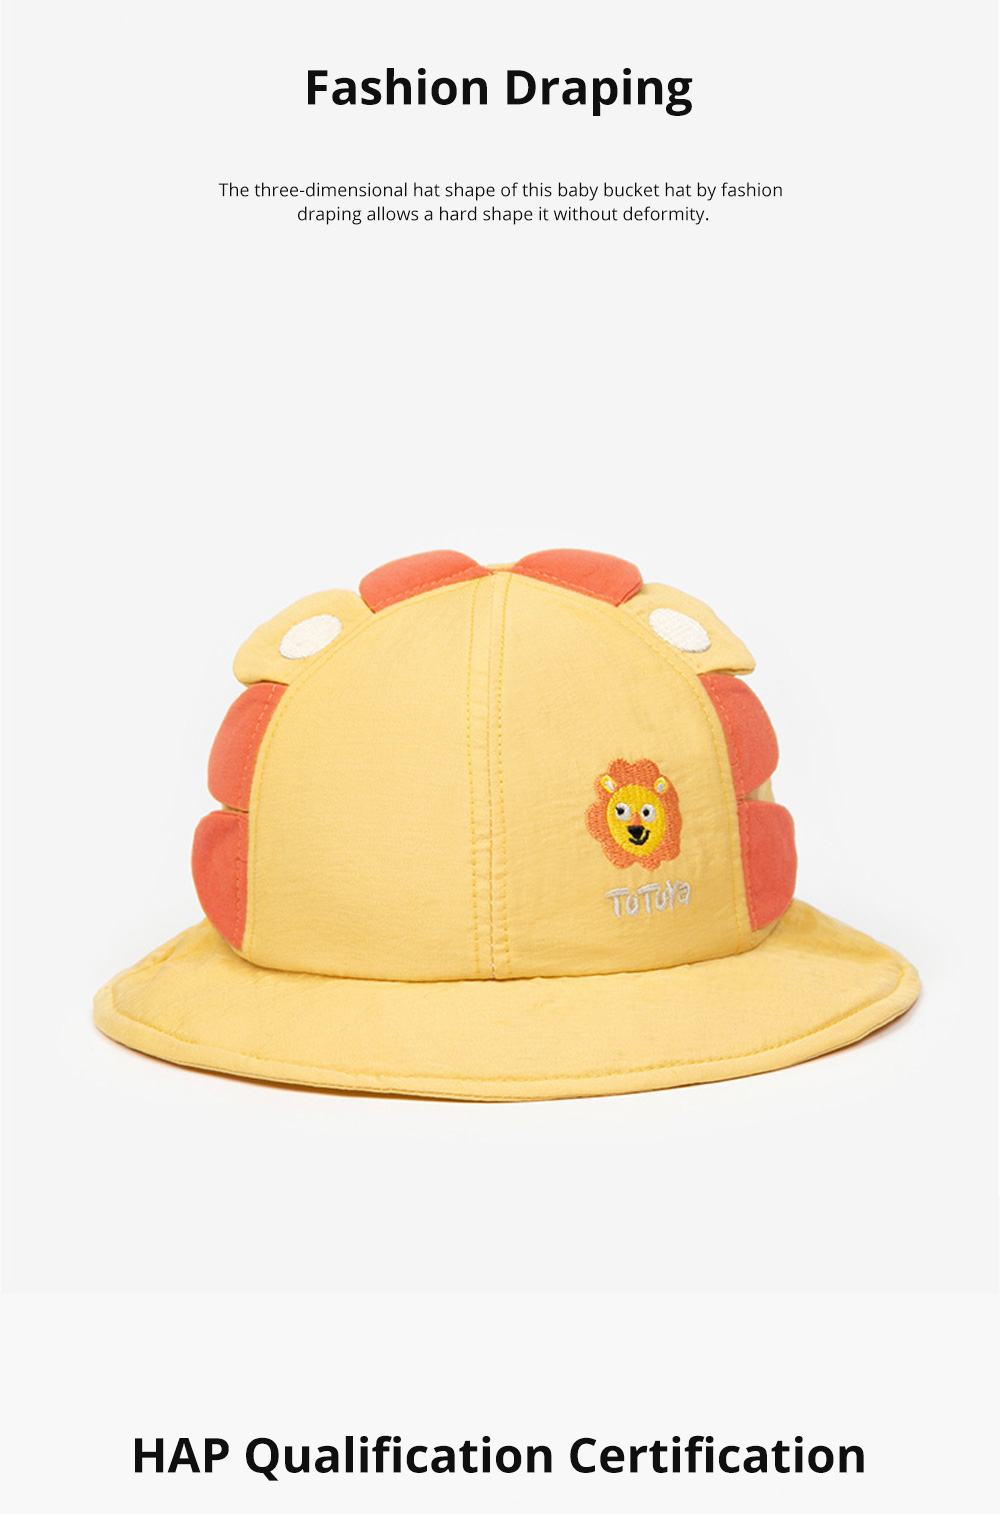 Bucket Hat for Babies Sunshine Shade Thin Spring Cotton Hat Lovely Comfortable Baby Bucket Hat Breathable Baby Hat 5